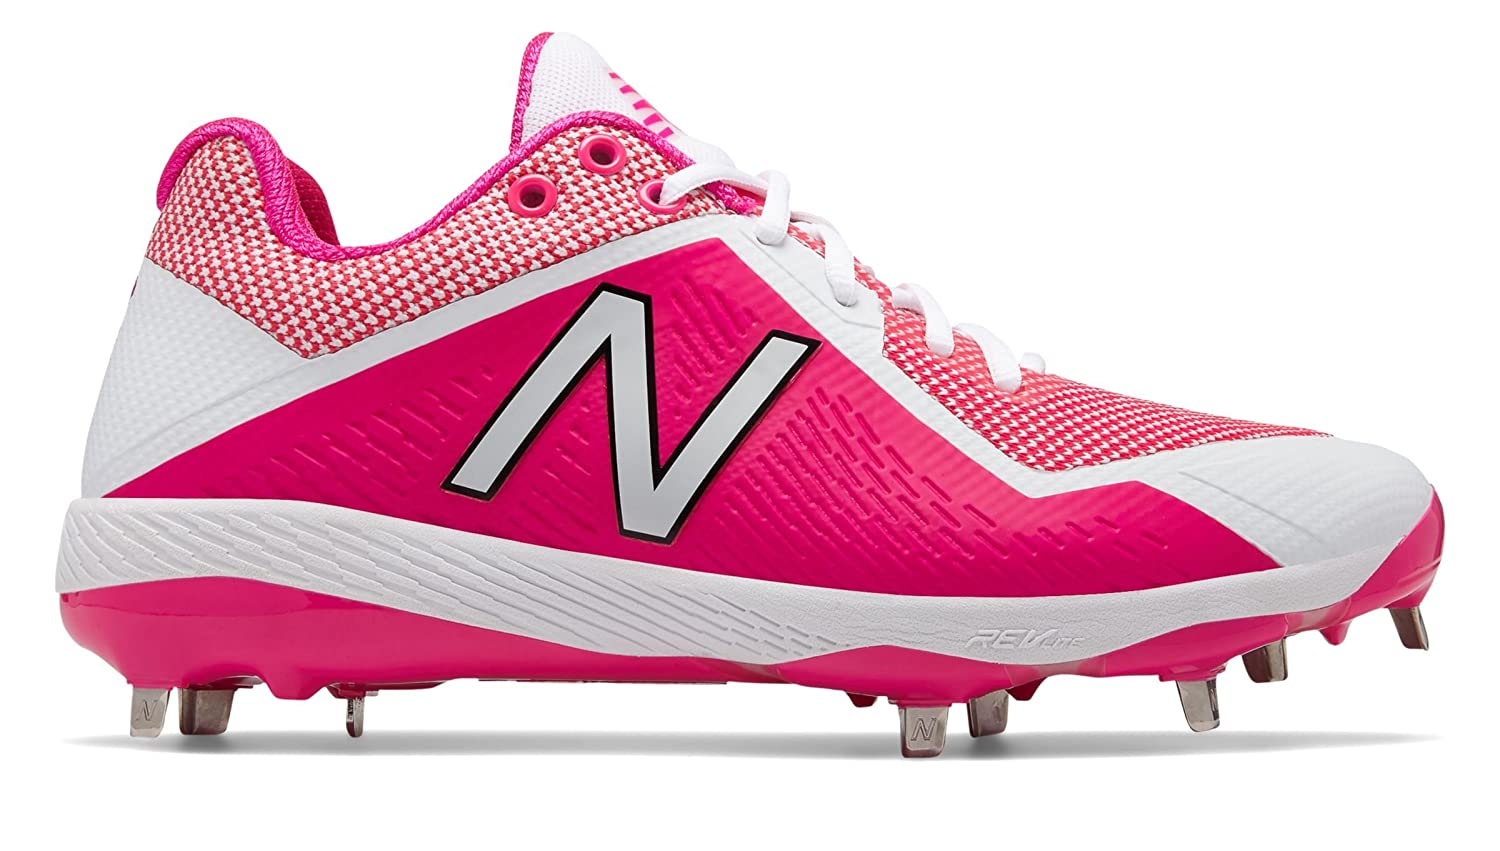 [New Balance(ニューバランス)] 靴シューズ メンズ野球 4040v4 Mothers Day Alpha Pink with White ピンク ホワイト US 13 (31cm) B07DMSBVVY